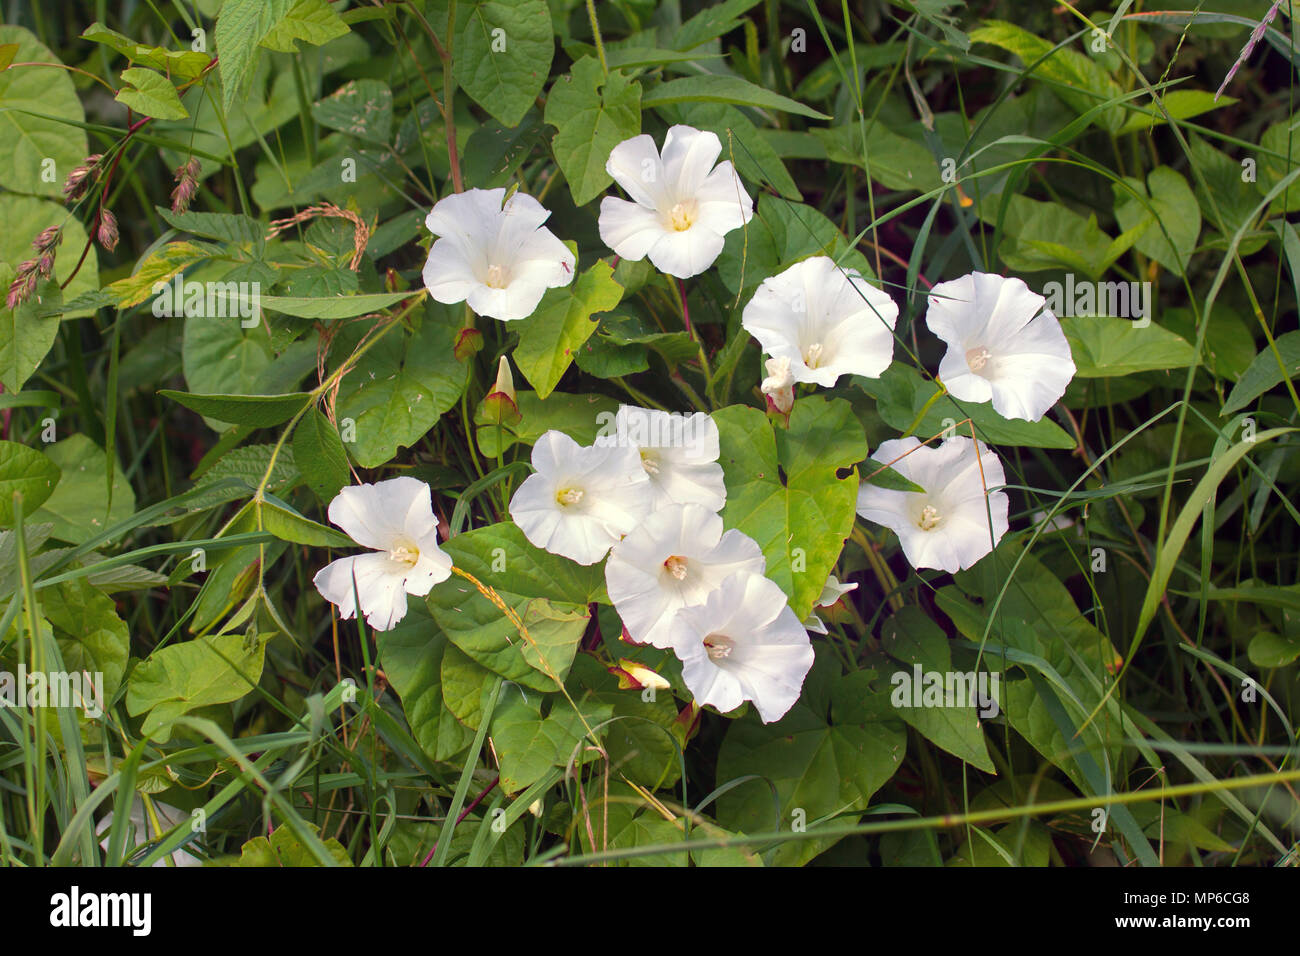 Bindweed Convolvulus Sp On Meadow Group Of Flowers White